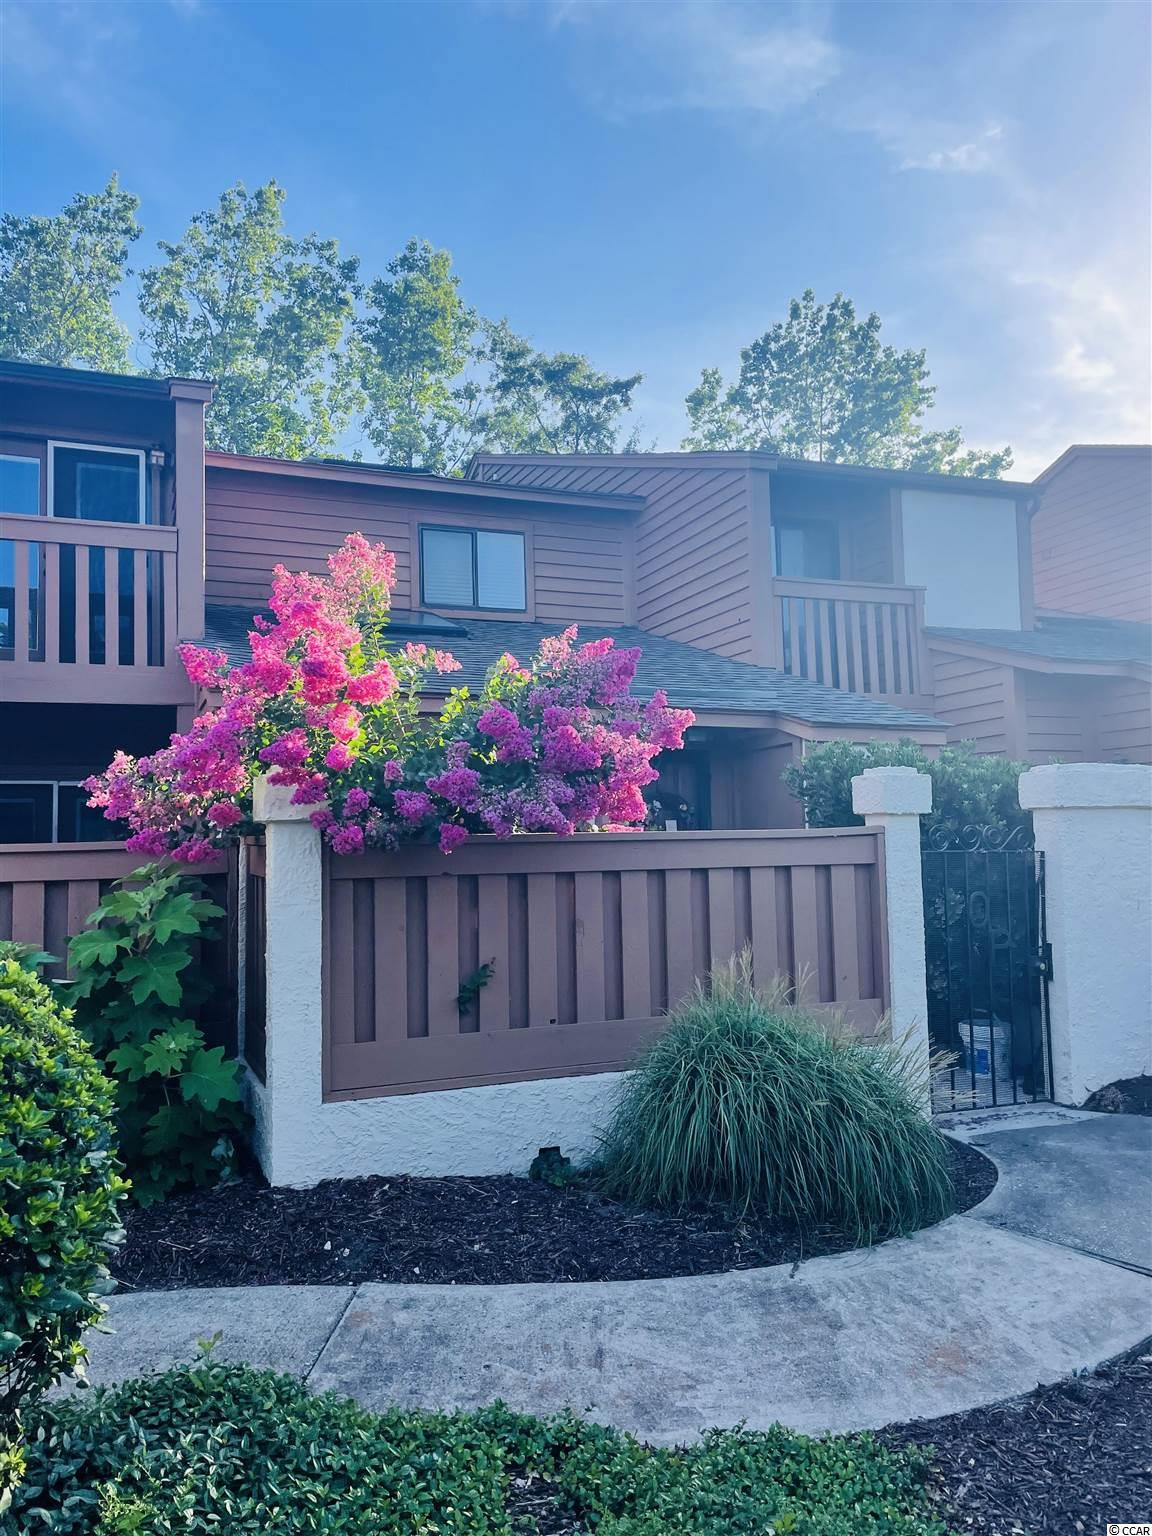 Welcome to the Ocean Pines II neighborhood. This cute condo neighborhood offers great amenities and is located less than a mile from the beach. A perfect vacation getaway and must be seen to appreciate. LOCATION LOCATION LOCATION. It will not last long in this market so come check it out.